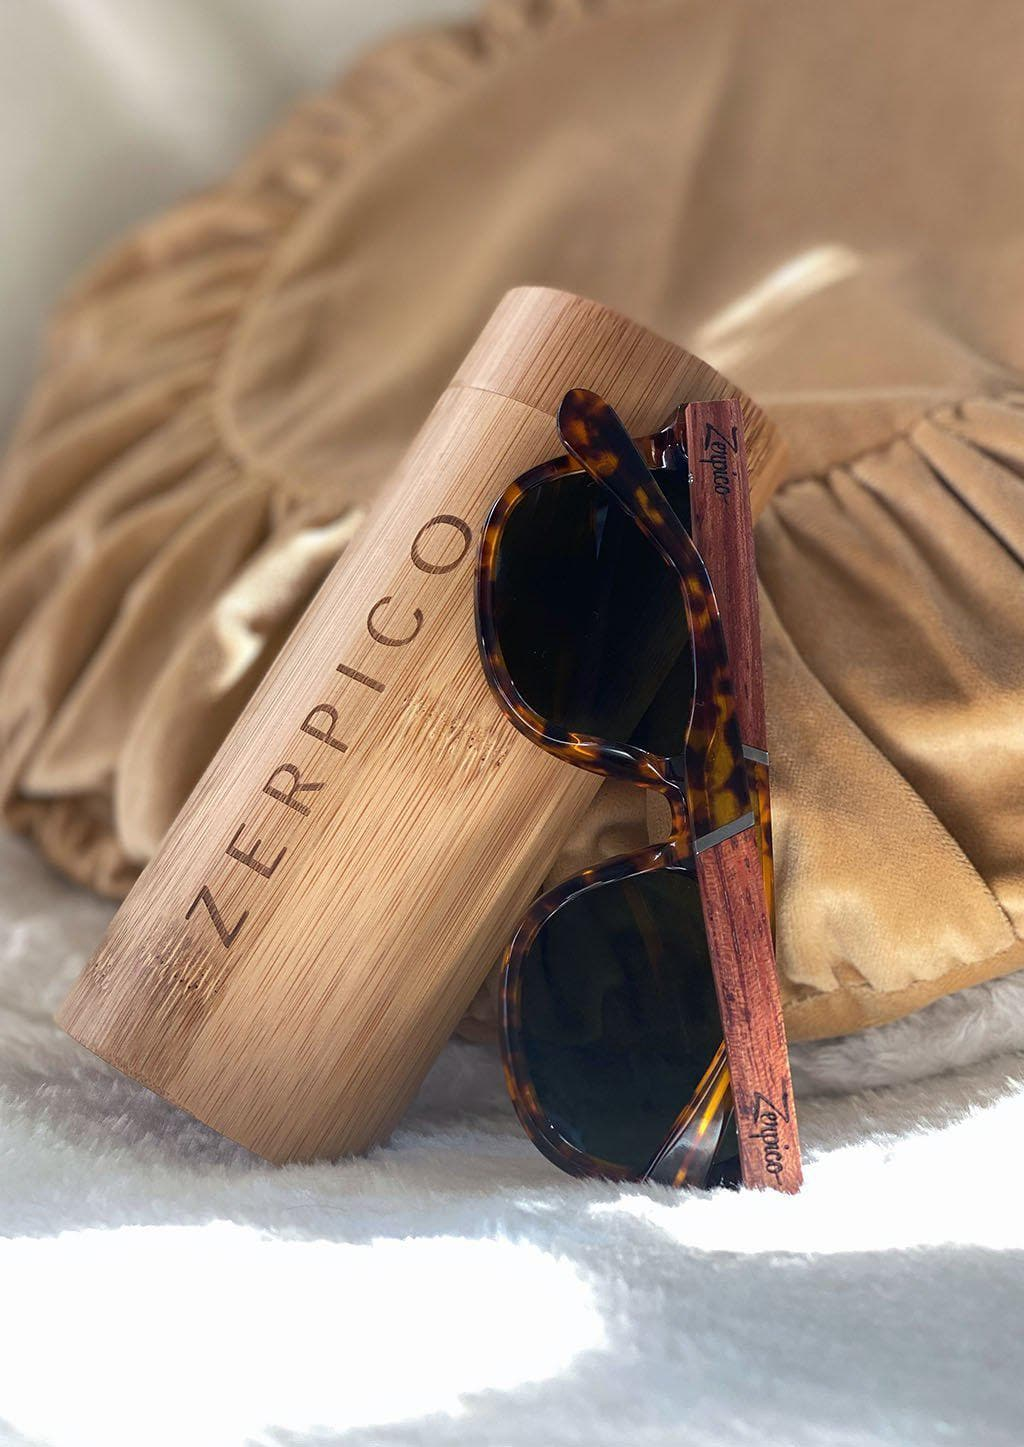 Eyewood Wayfarers - Fusion - Lynx - A mix of acetate and wood makes theses sunglasses unique. Details with the special wooden case.